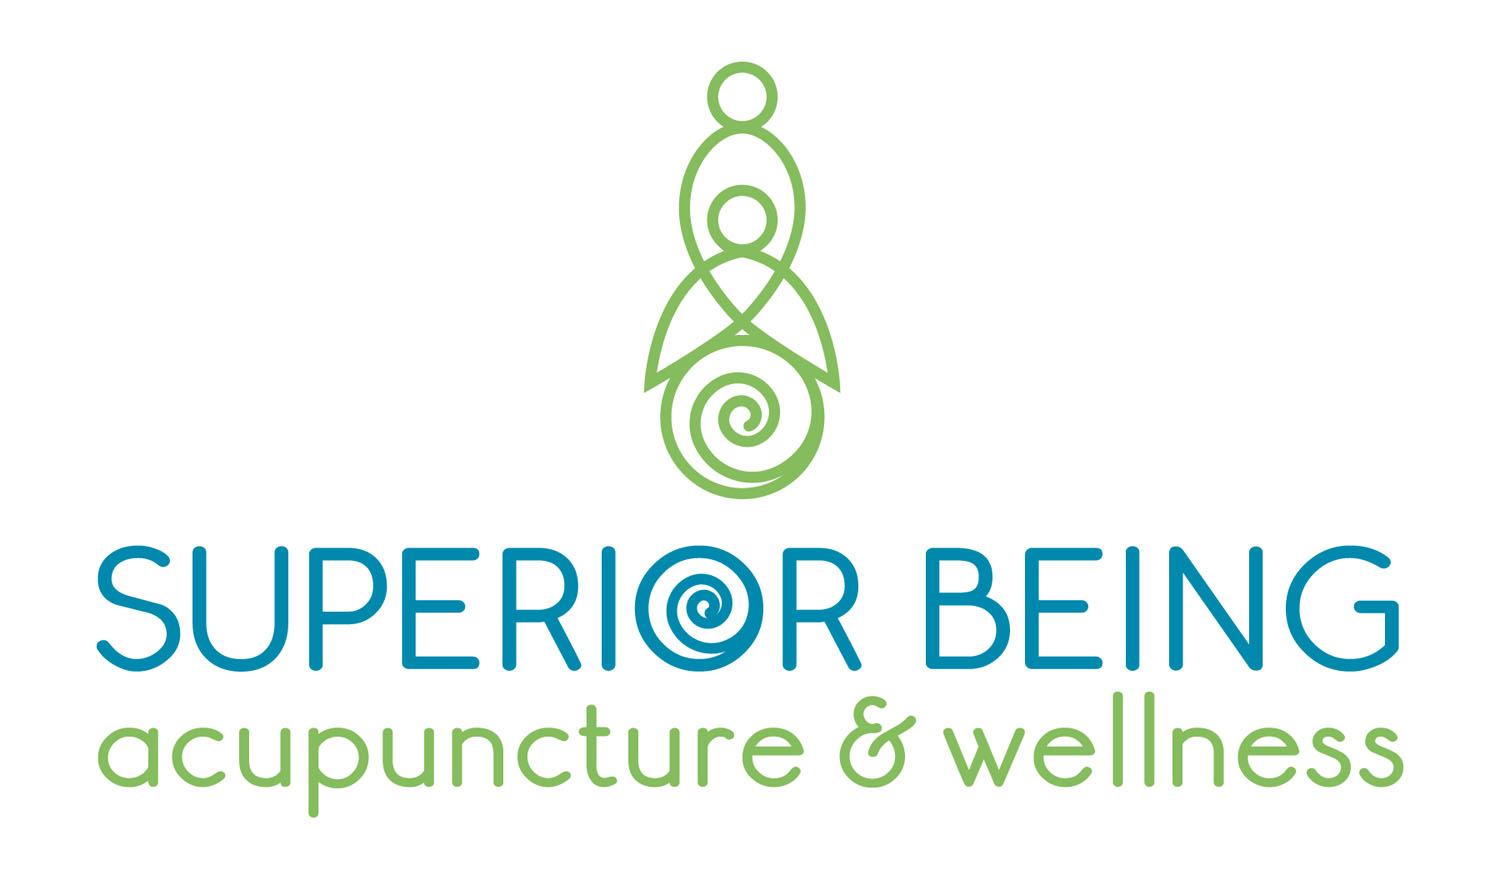 Superior Being Acupuncture & Wellness